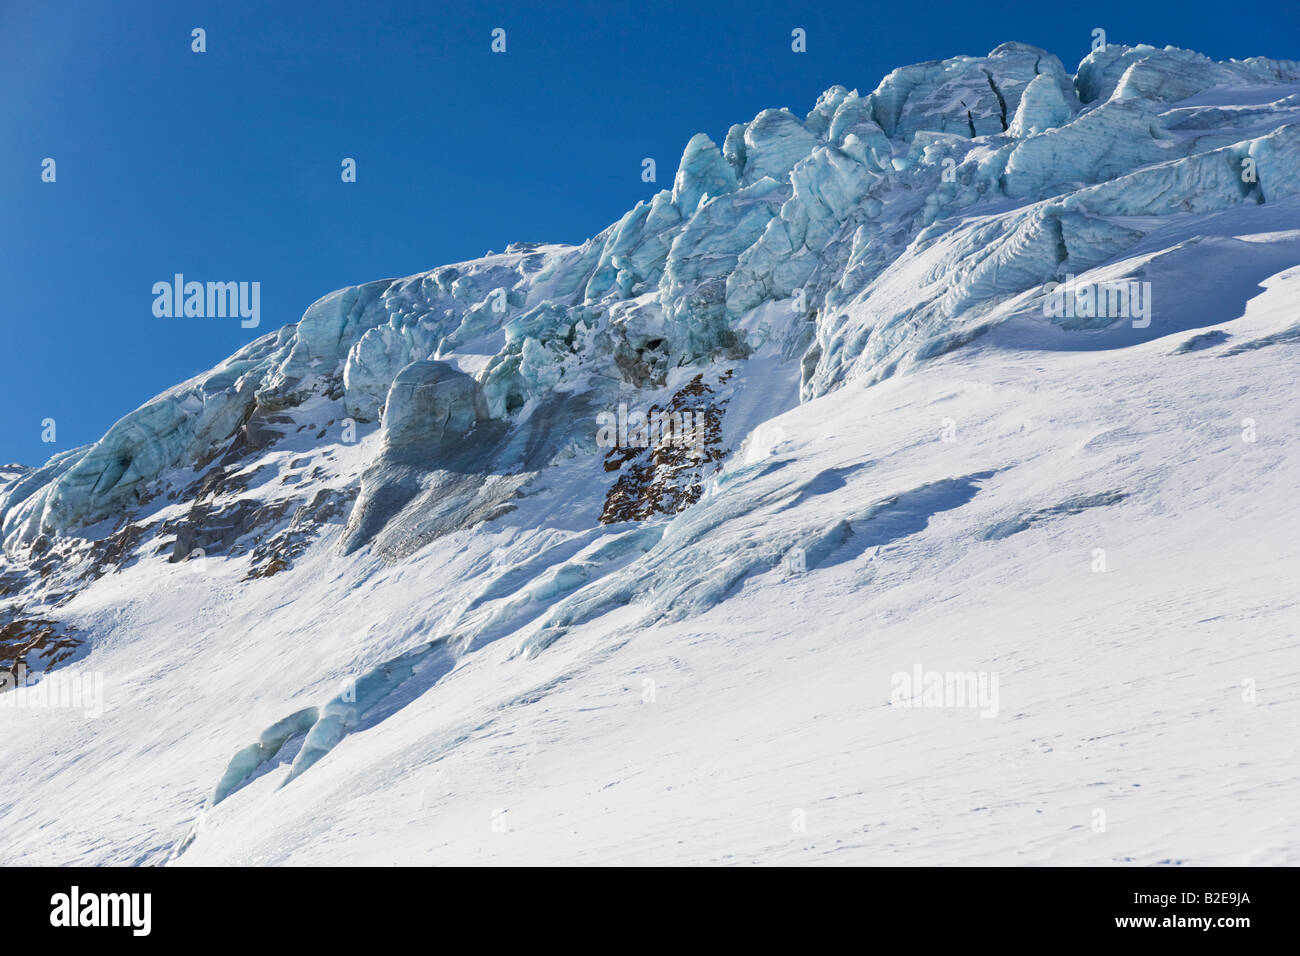 Snowcovered mountain under blue sky, Ochsentalergletscher, Silvretta, Vorarlberg, Austria - Stock Image